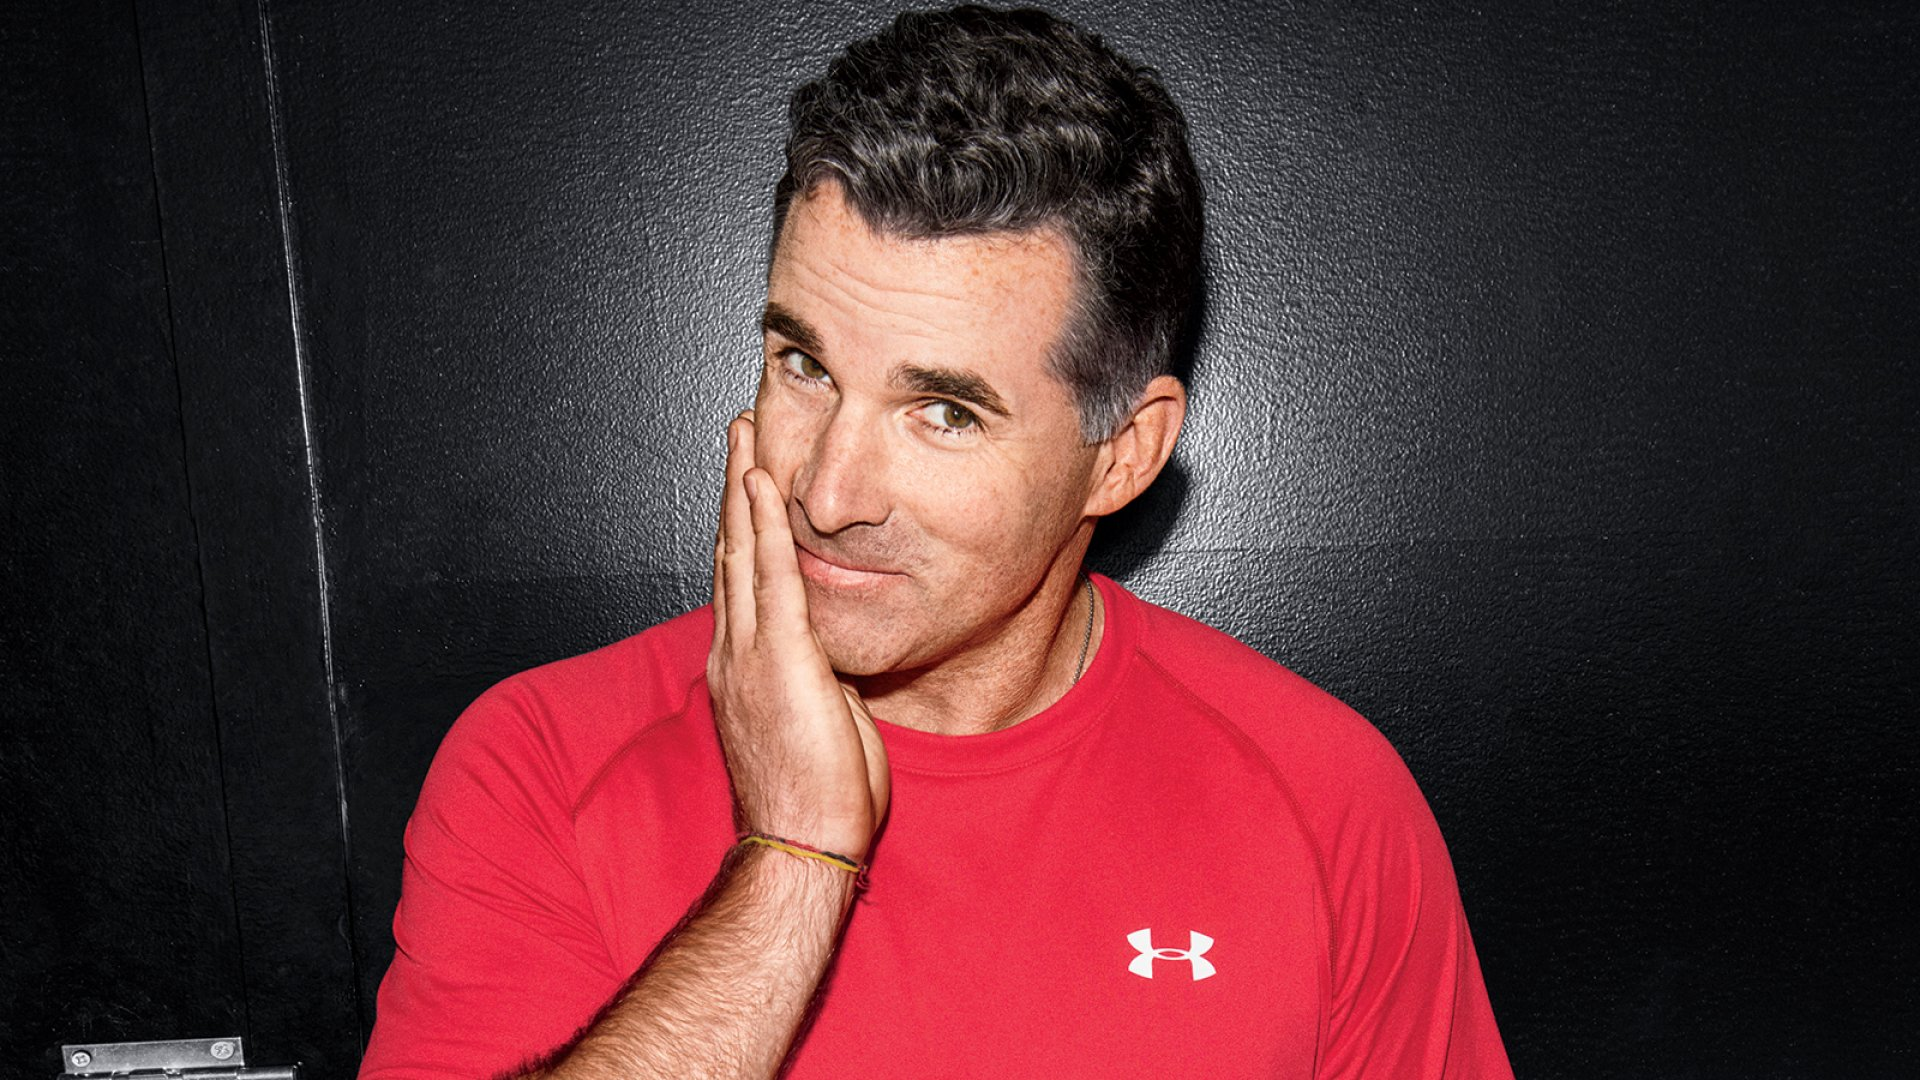 Former college football player turned sportswear entrepreneur Kevin Plank is betting that fitness trackers and apps will help Under Armour beat Nike. It's a tall order, but don't underestimate what this guy and his whiteboards can accomplish.